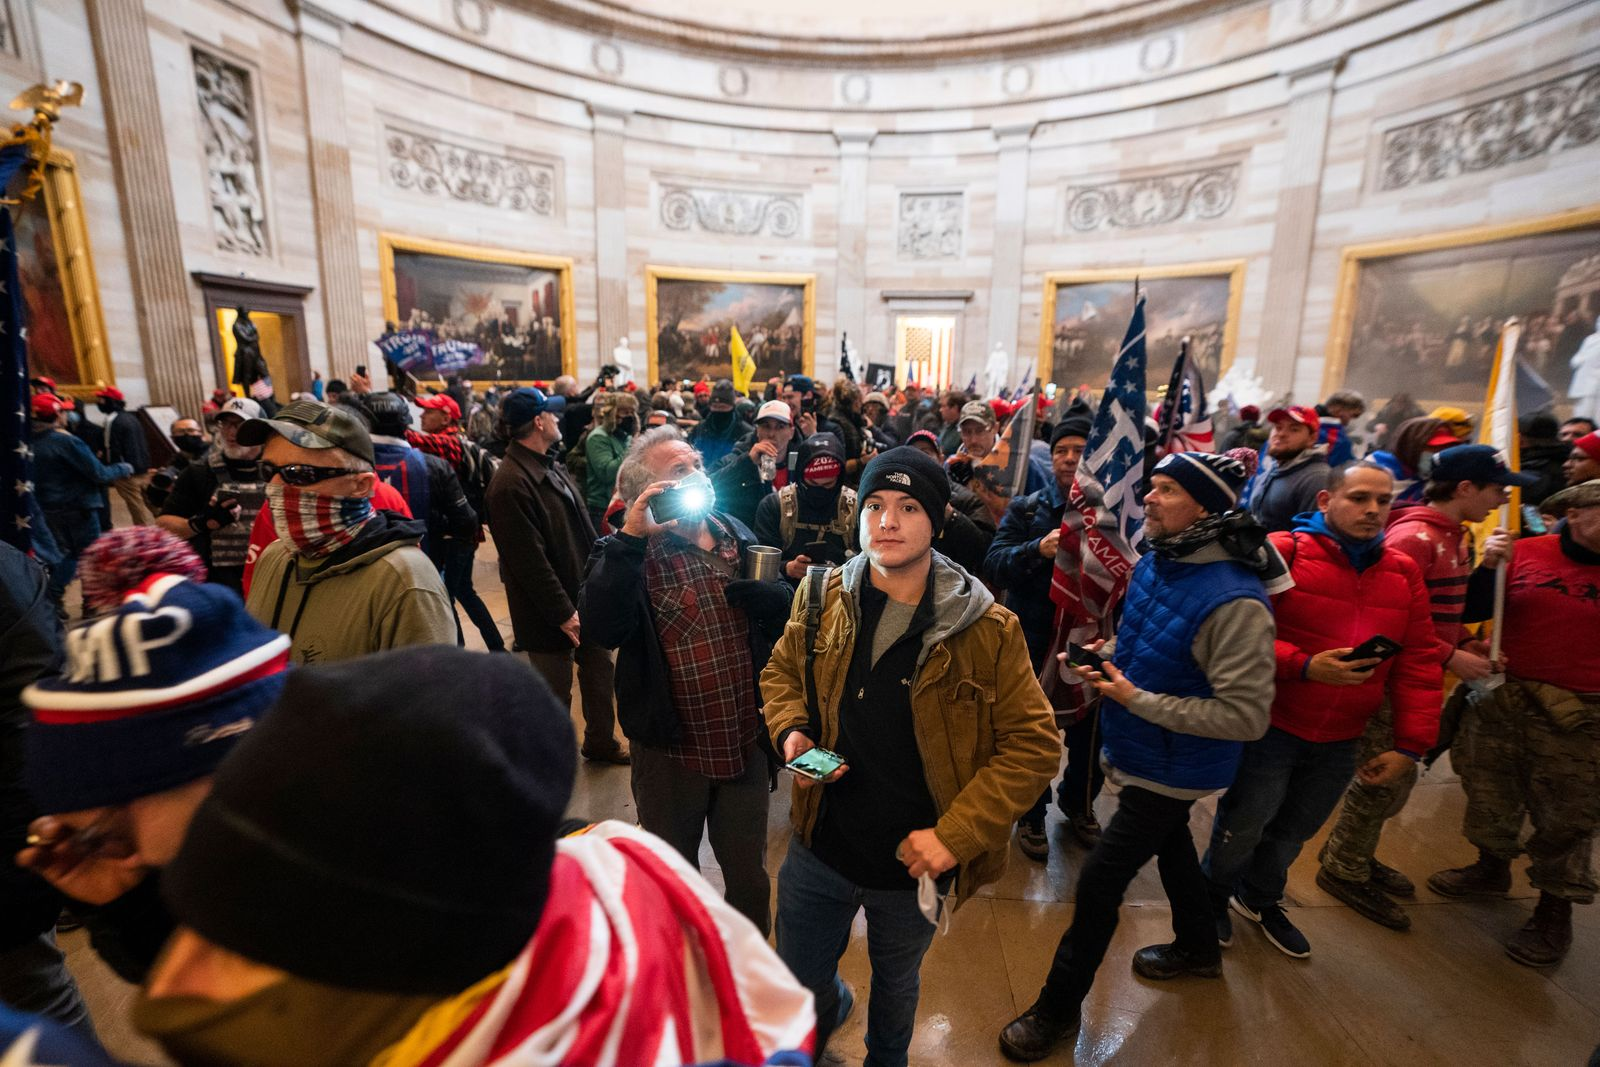 Protestors enter US Capitol, Washington, USA - 06 Jan 2021